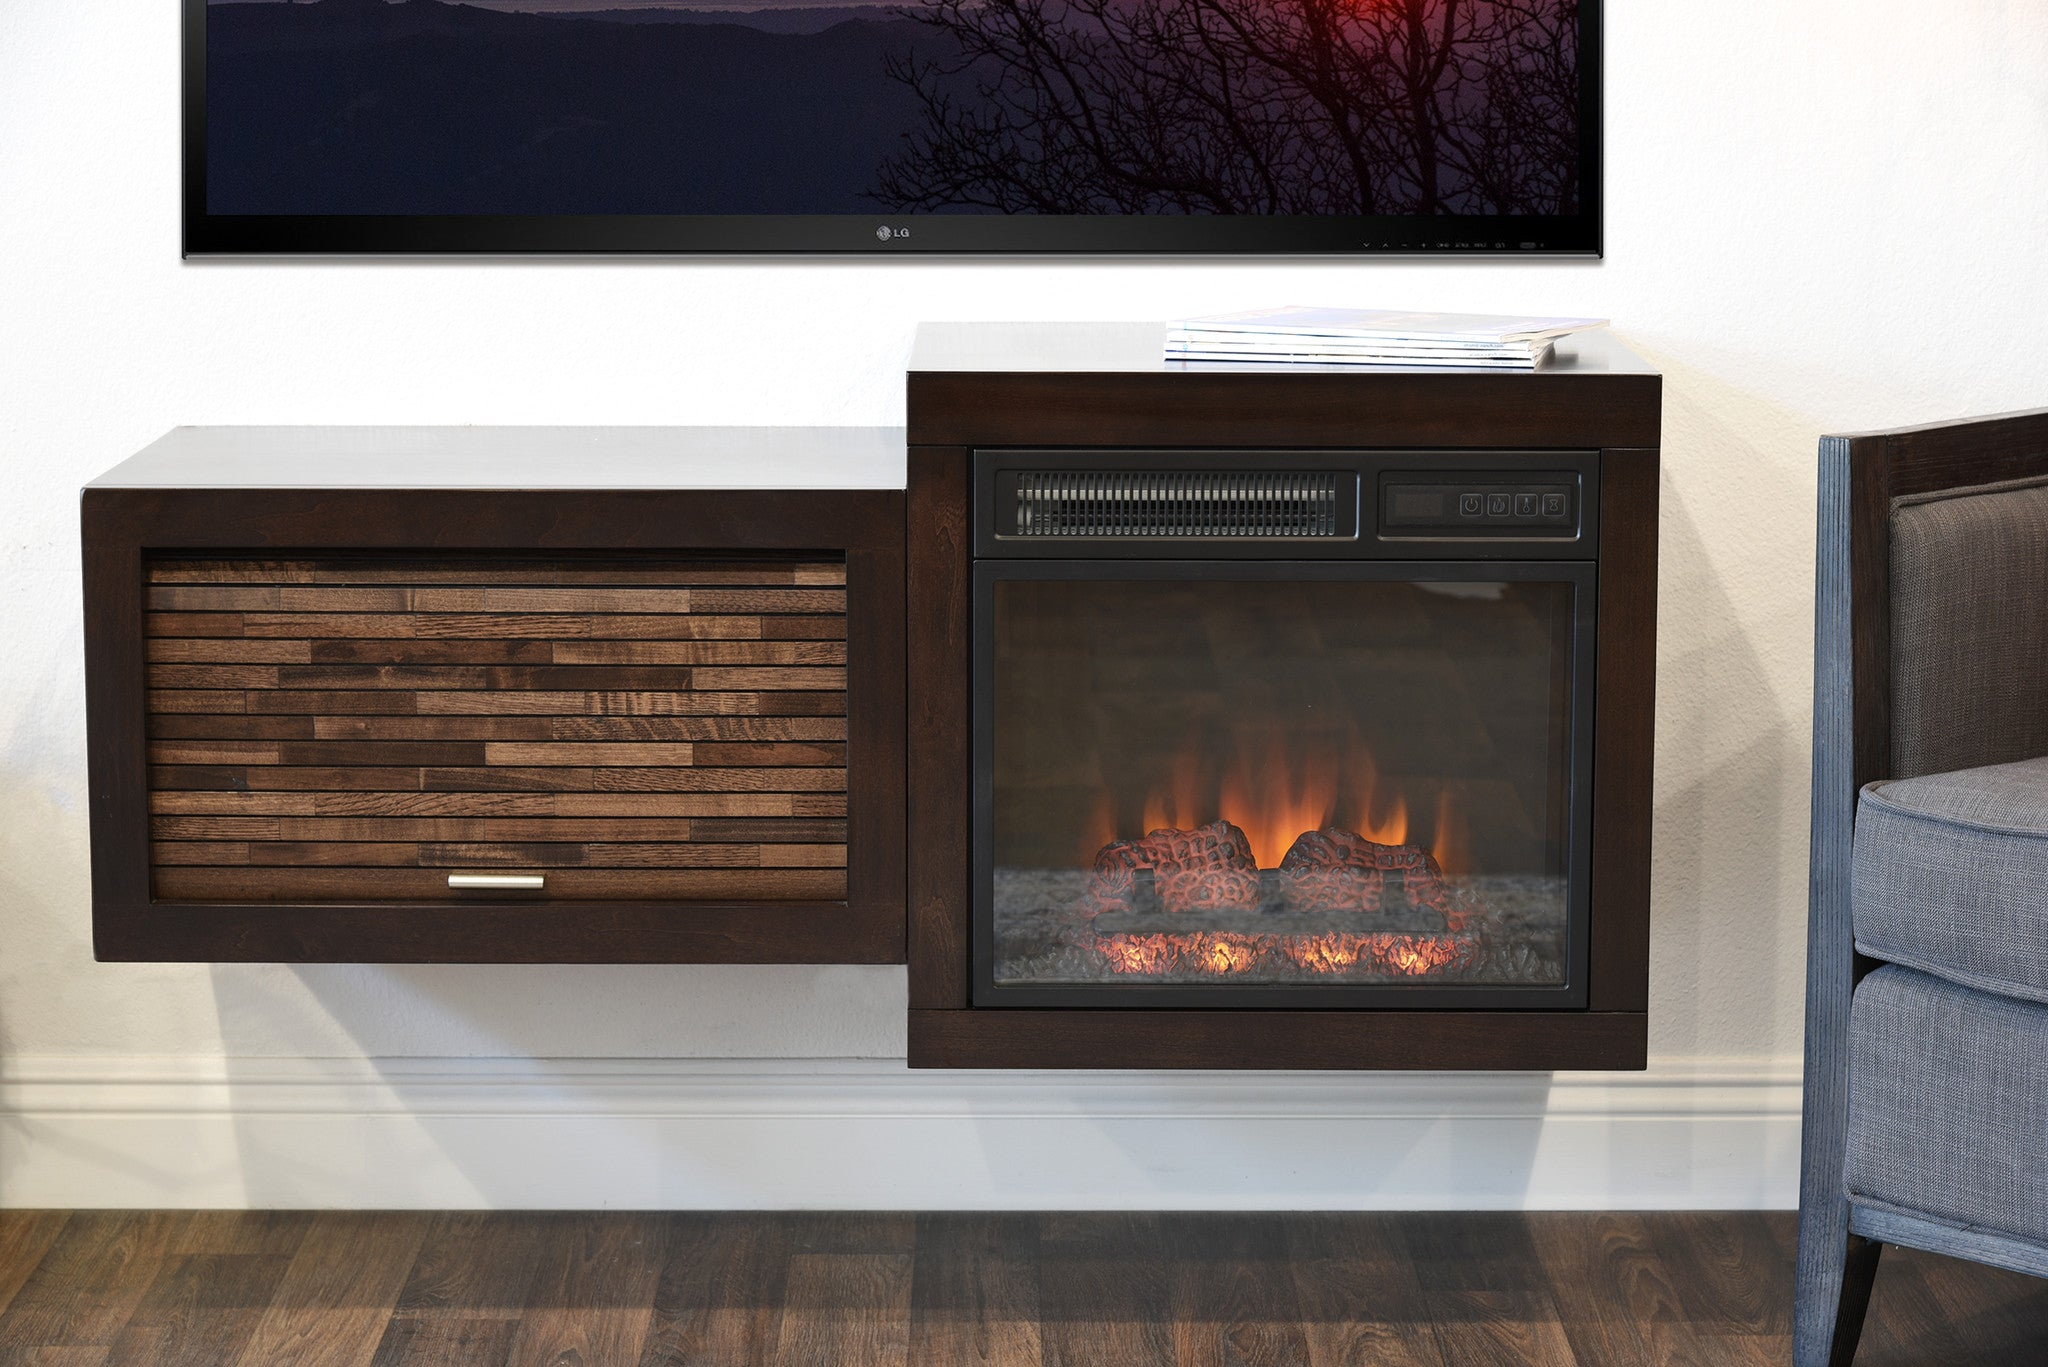 Save $$ With This Bundle! Mid Century Modern Retro Floating Media Console With Fireplace  The Eco Geo is a unique eco-friendly modular entertainment console which is handcrafted of solid Poplar and genuine Maple veneers.   This bundle includes our ele